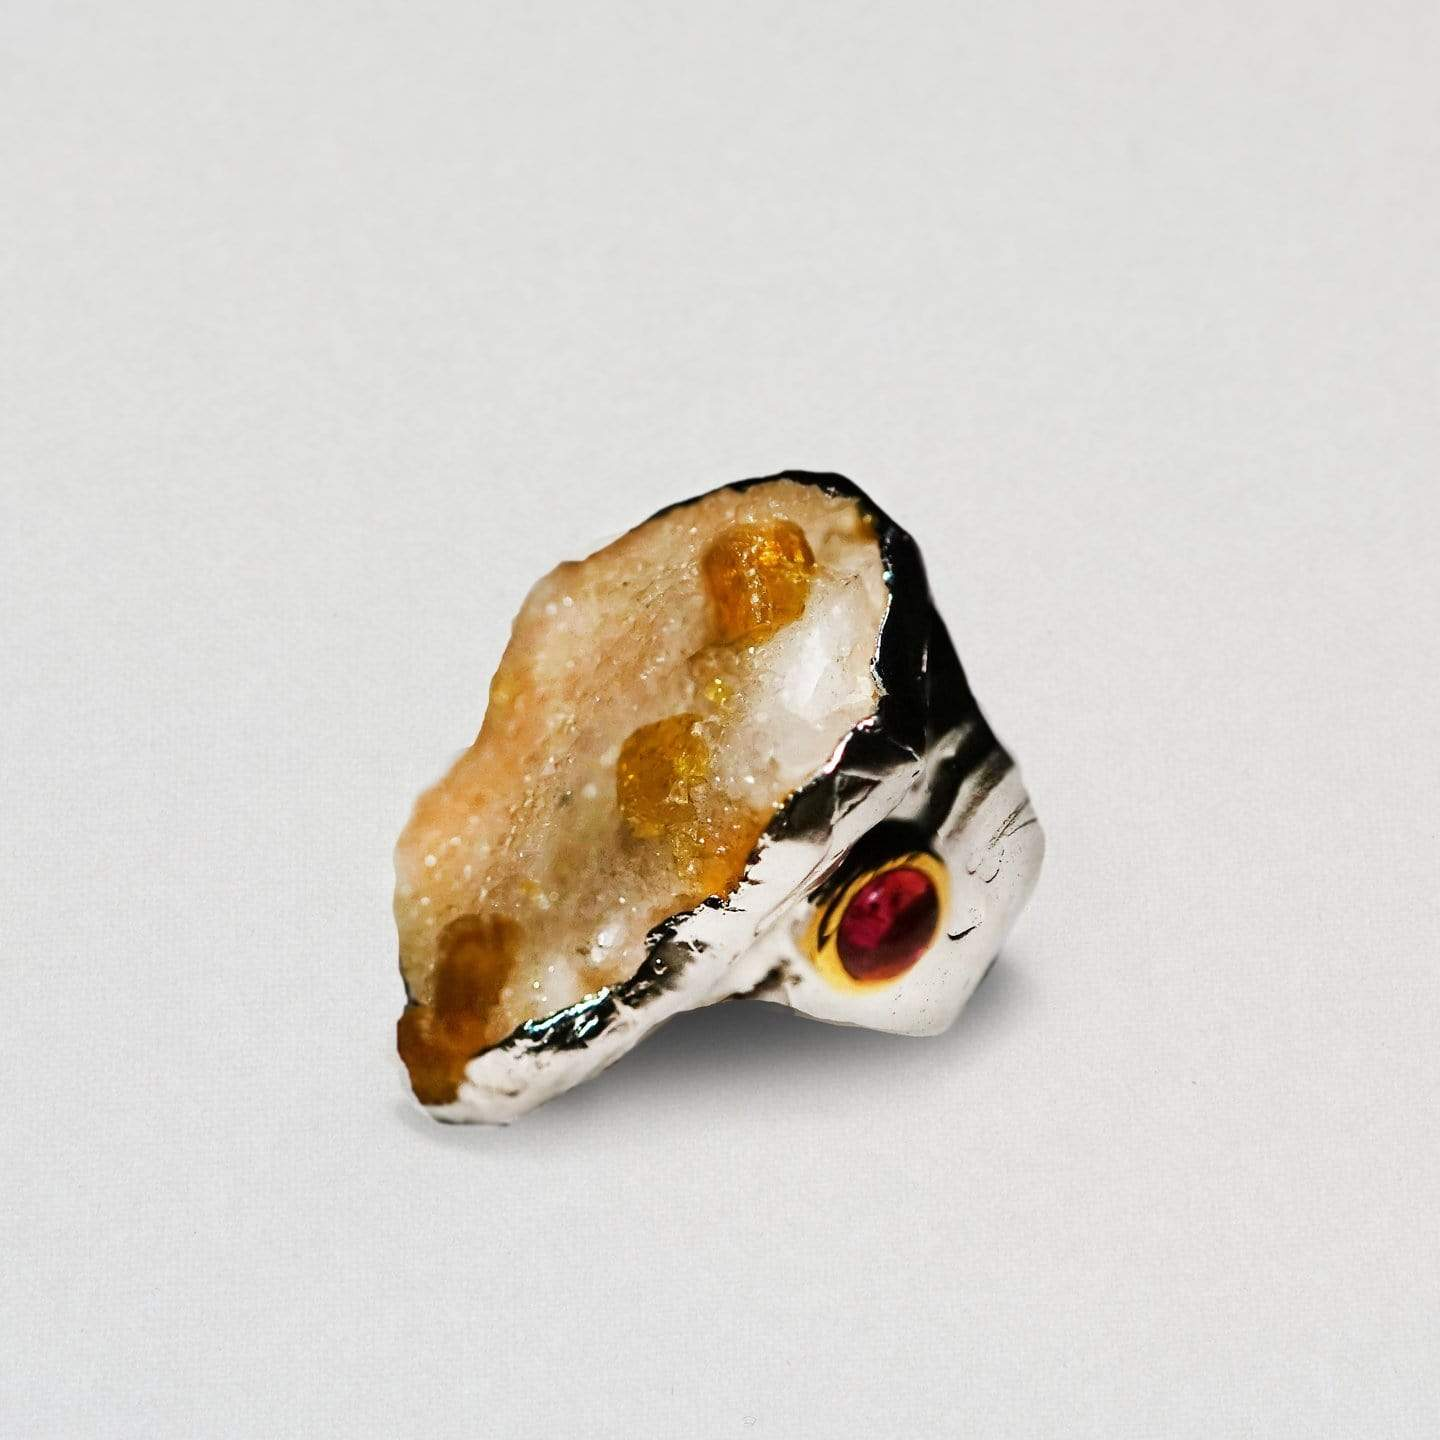 Carraig Ring, Exclusive, Gold, Rhodium, silver, spo-disabled, StoneColor:Orange, Style:Statement, Tourmaline, Type:LargeSoloStone Ring